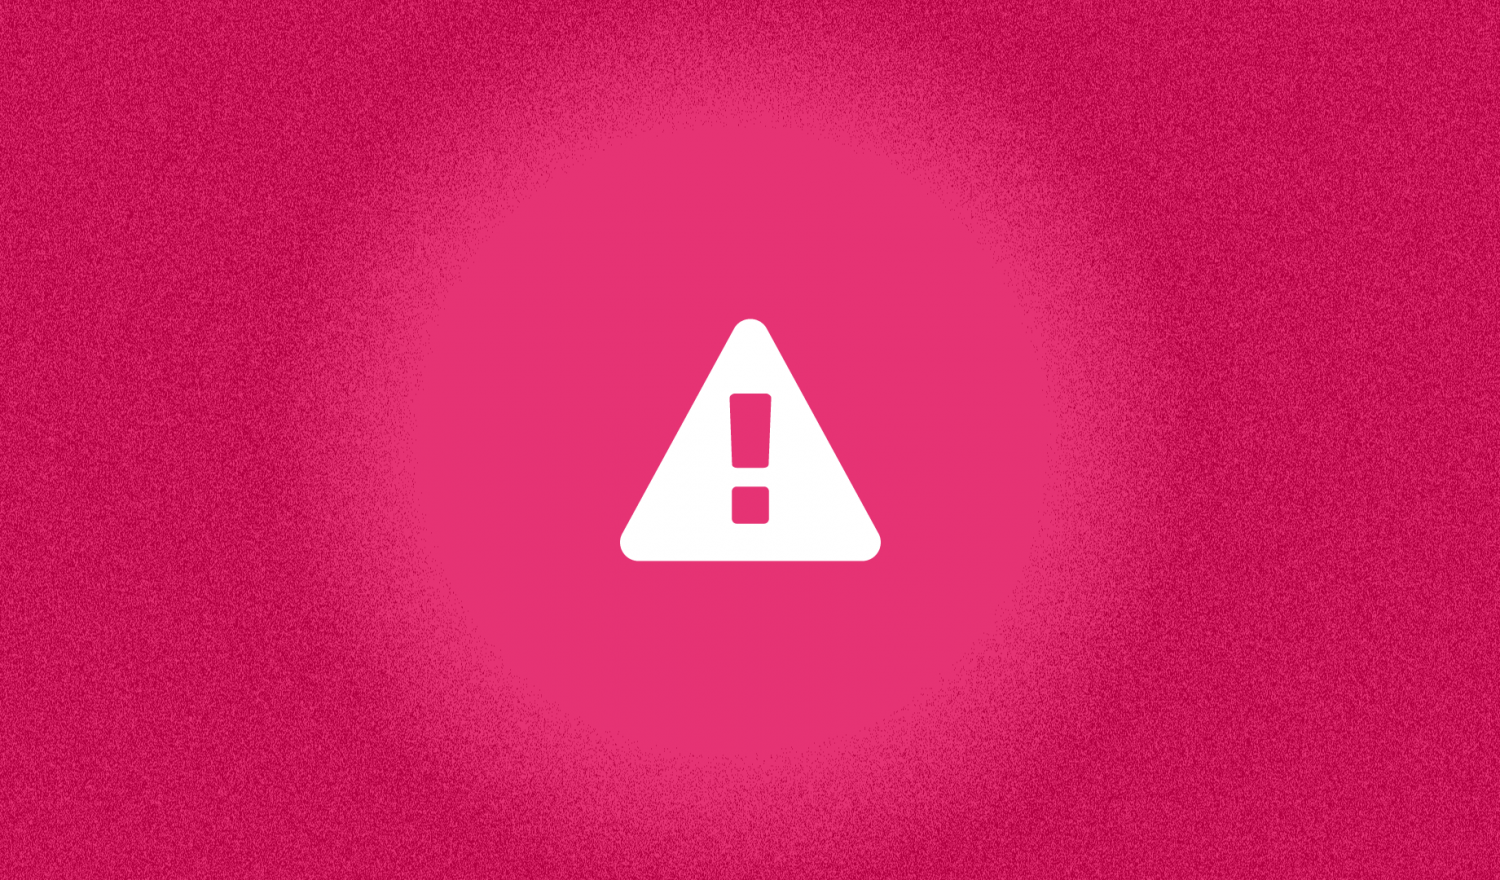 JUnit 4: A white warning sign with exclamation mark in a bright red surrounding